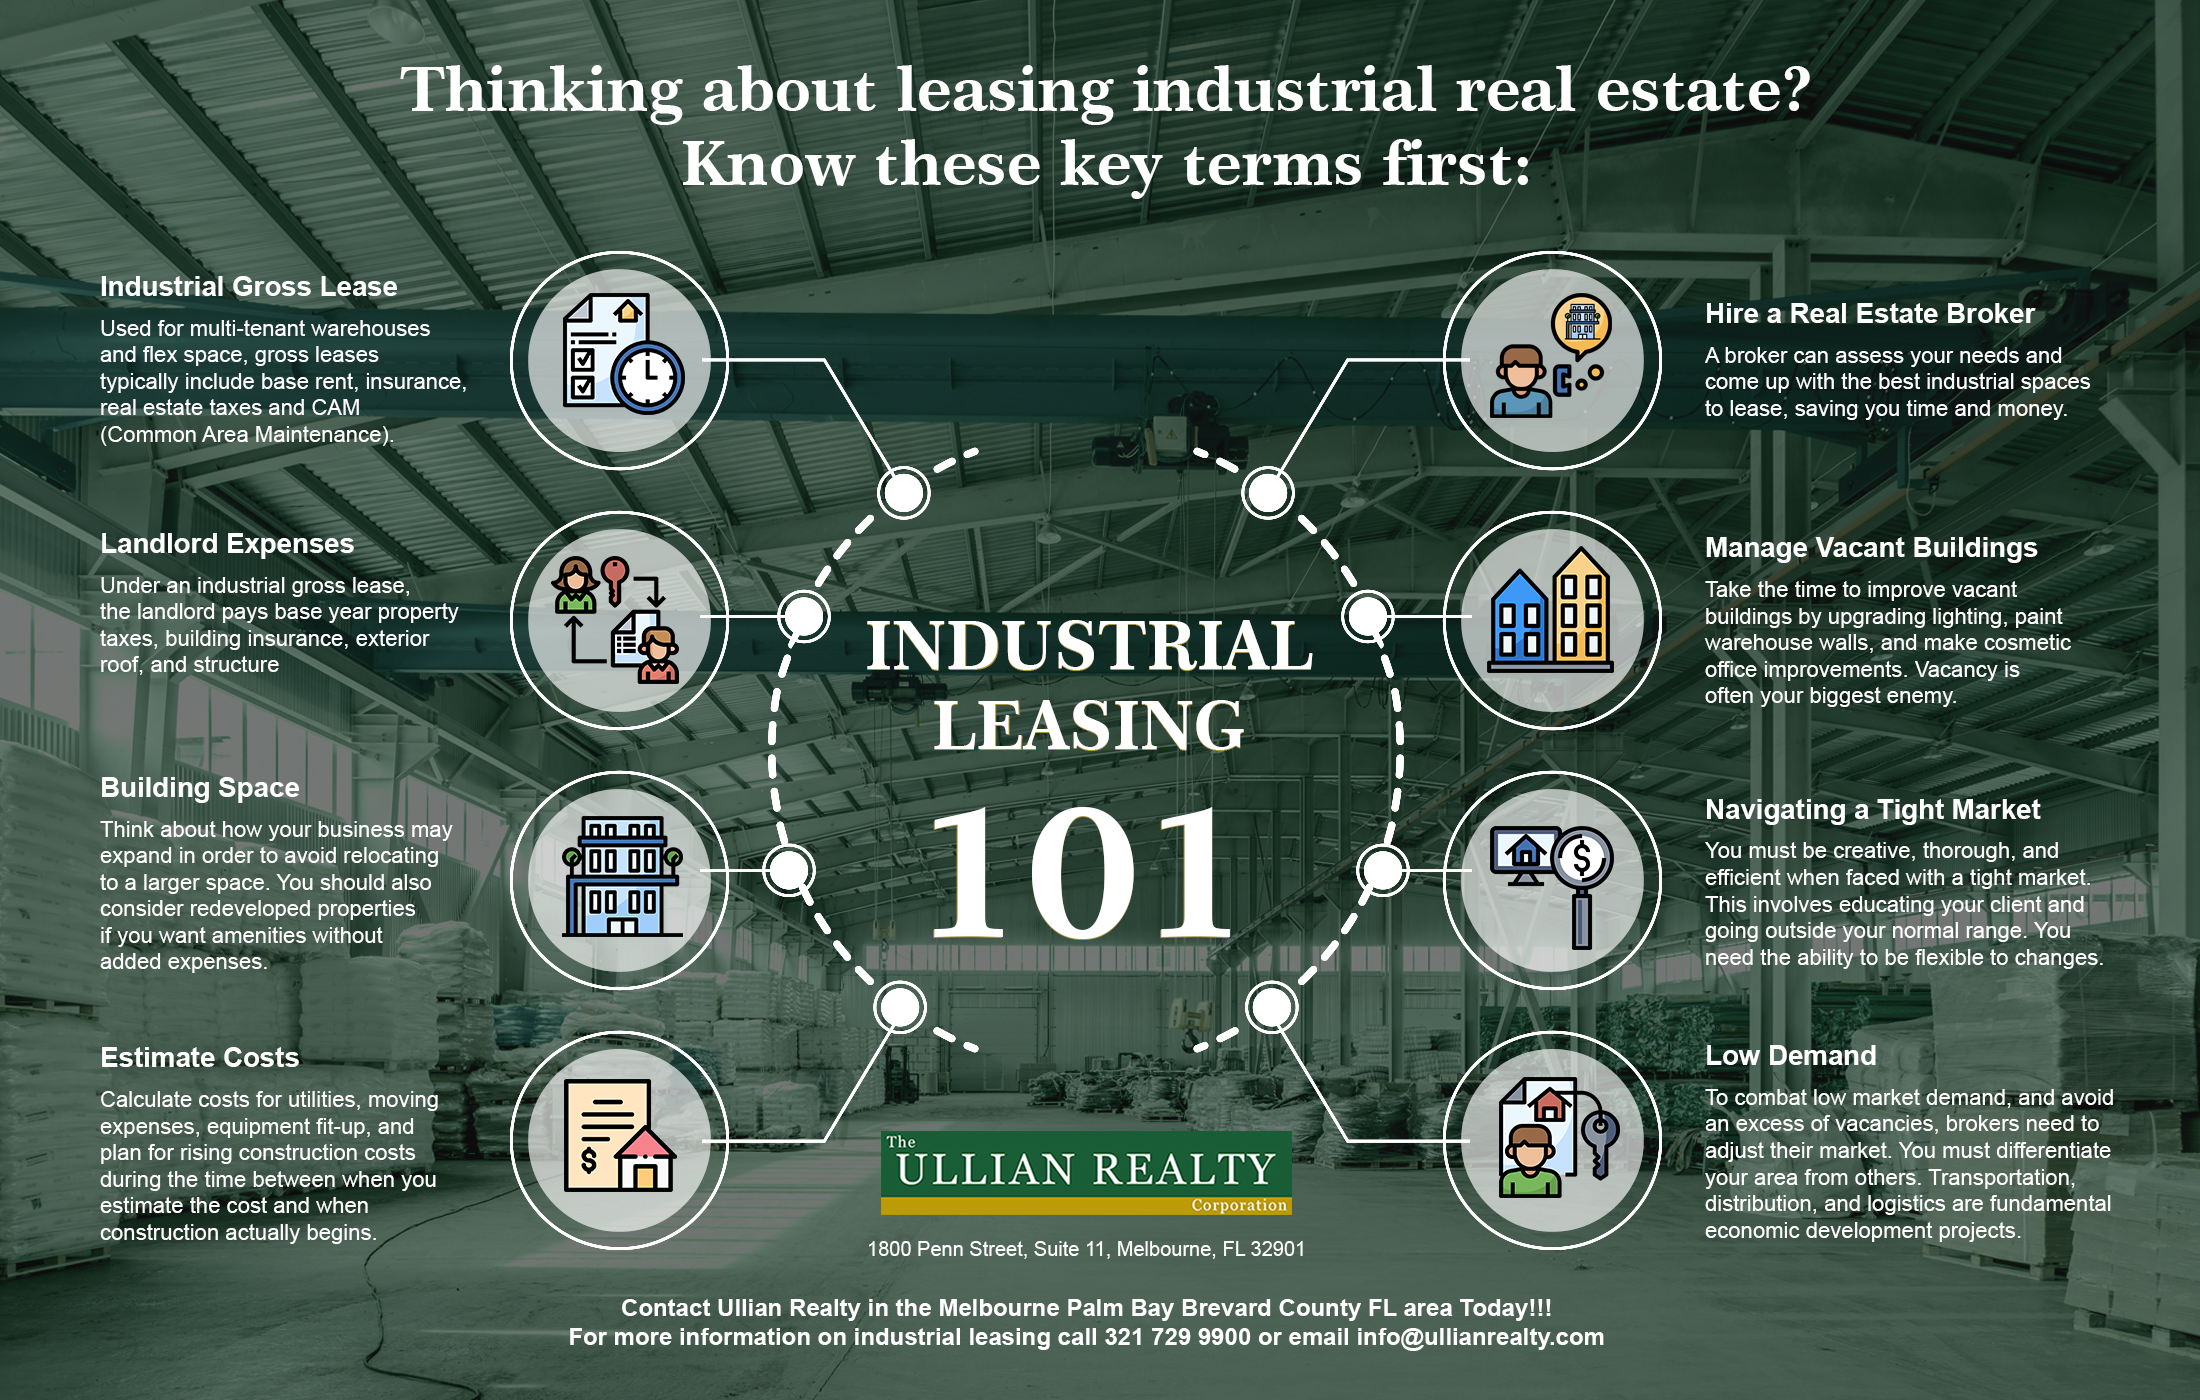 Industrial Leasing 101 infographic